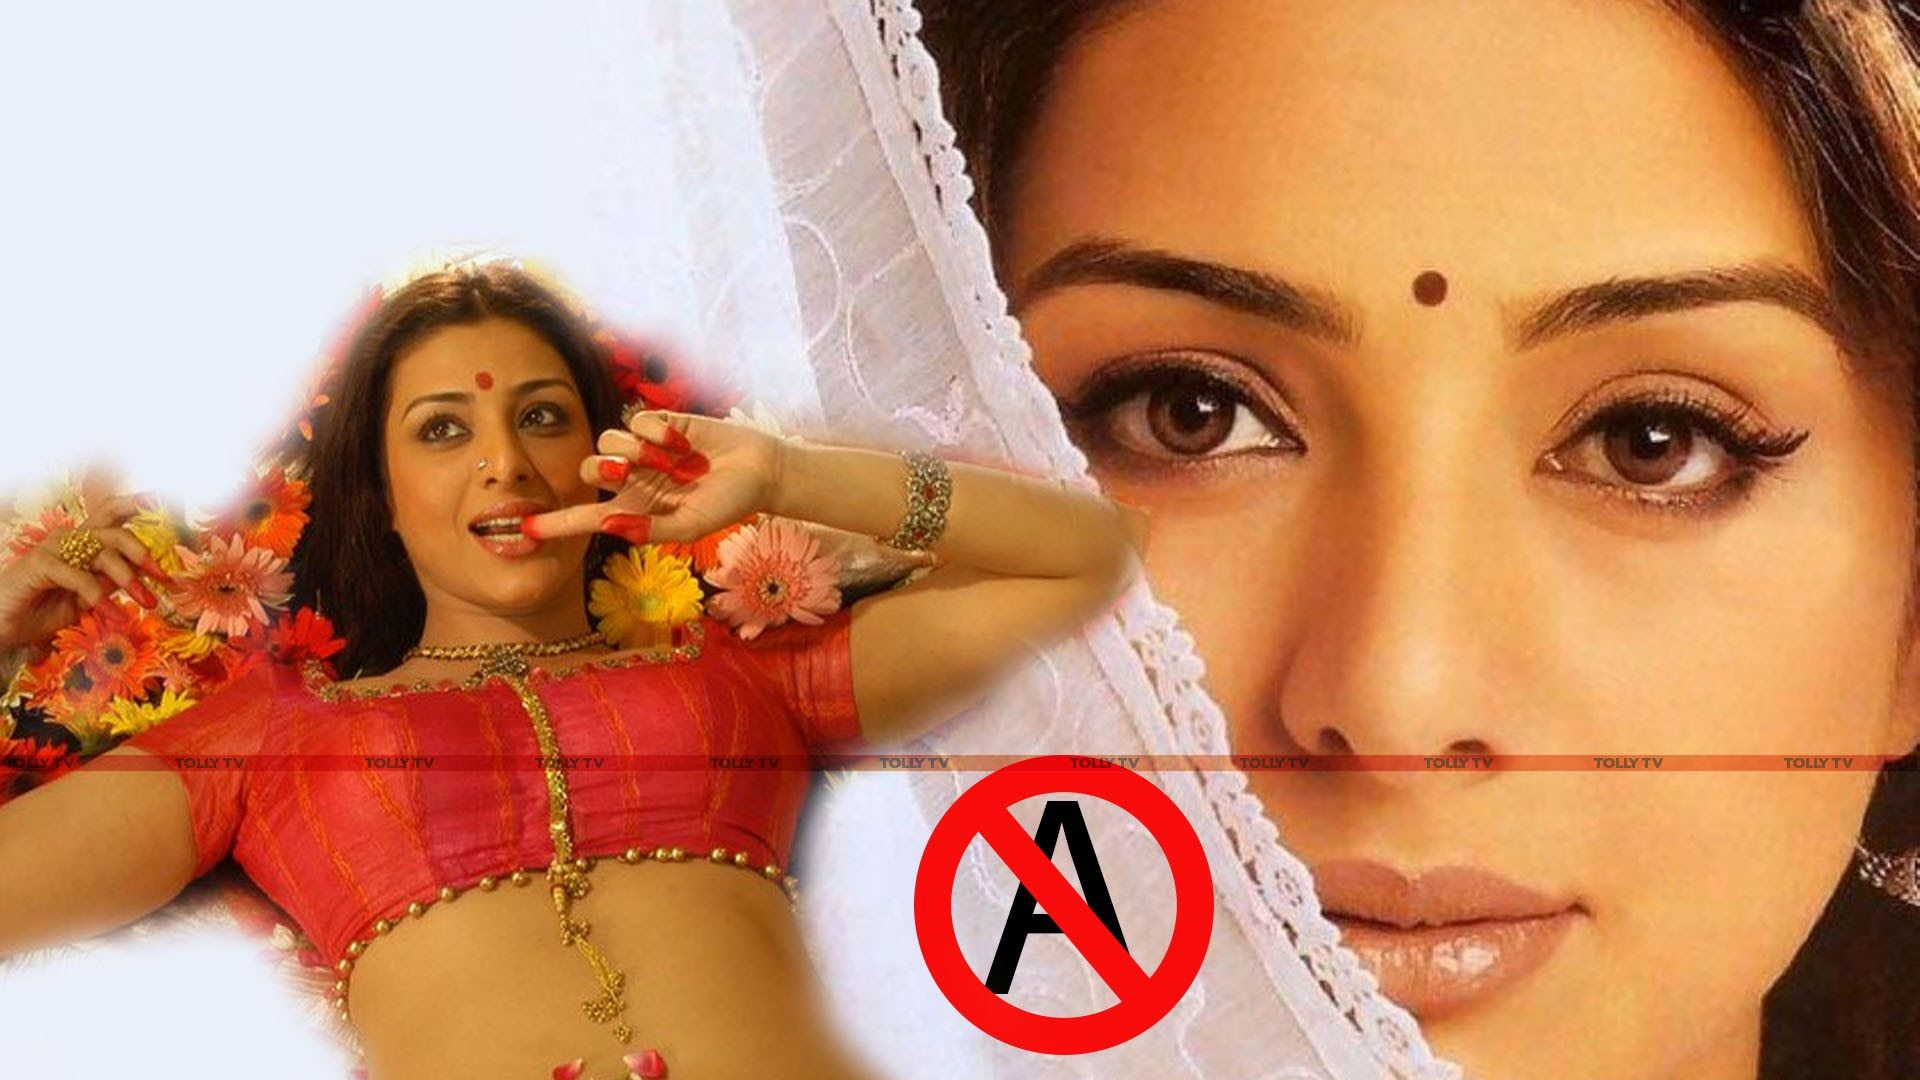 Tamil adult film